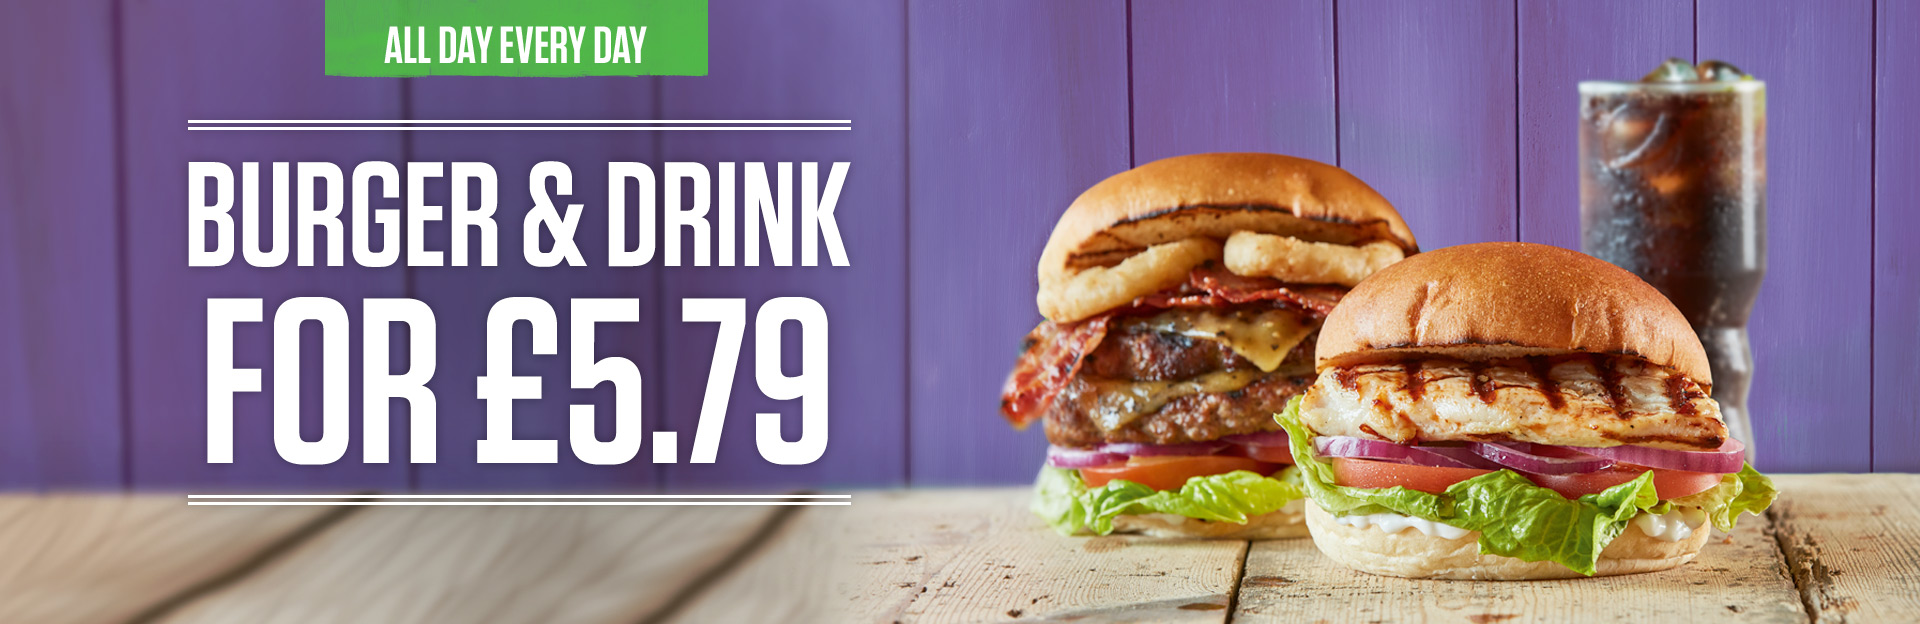 Burger and Drink Deal at The Haddon Hall